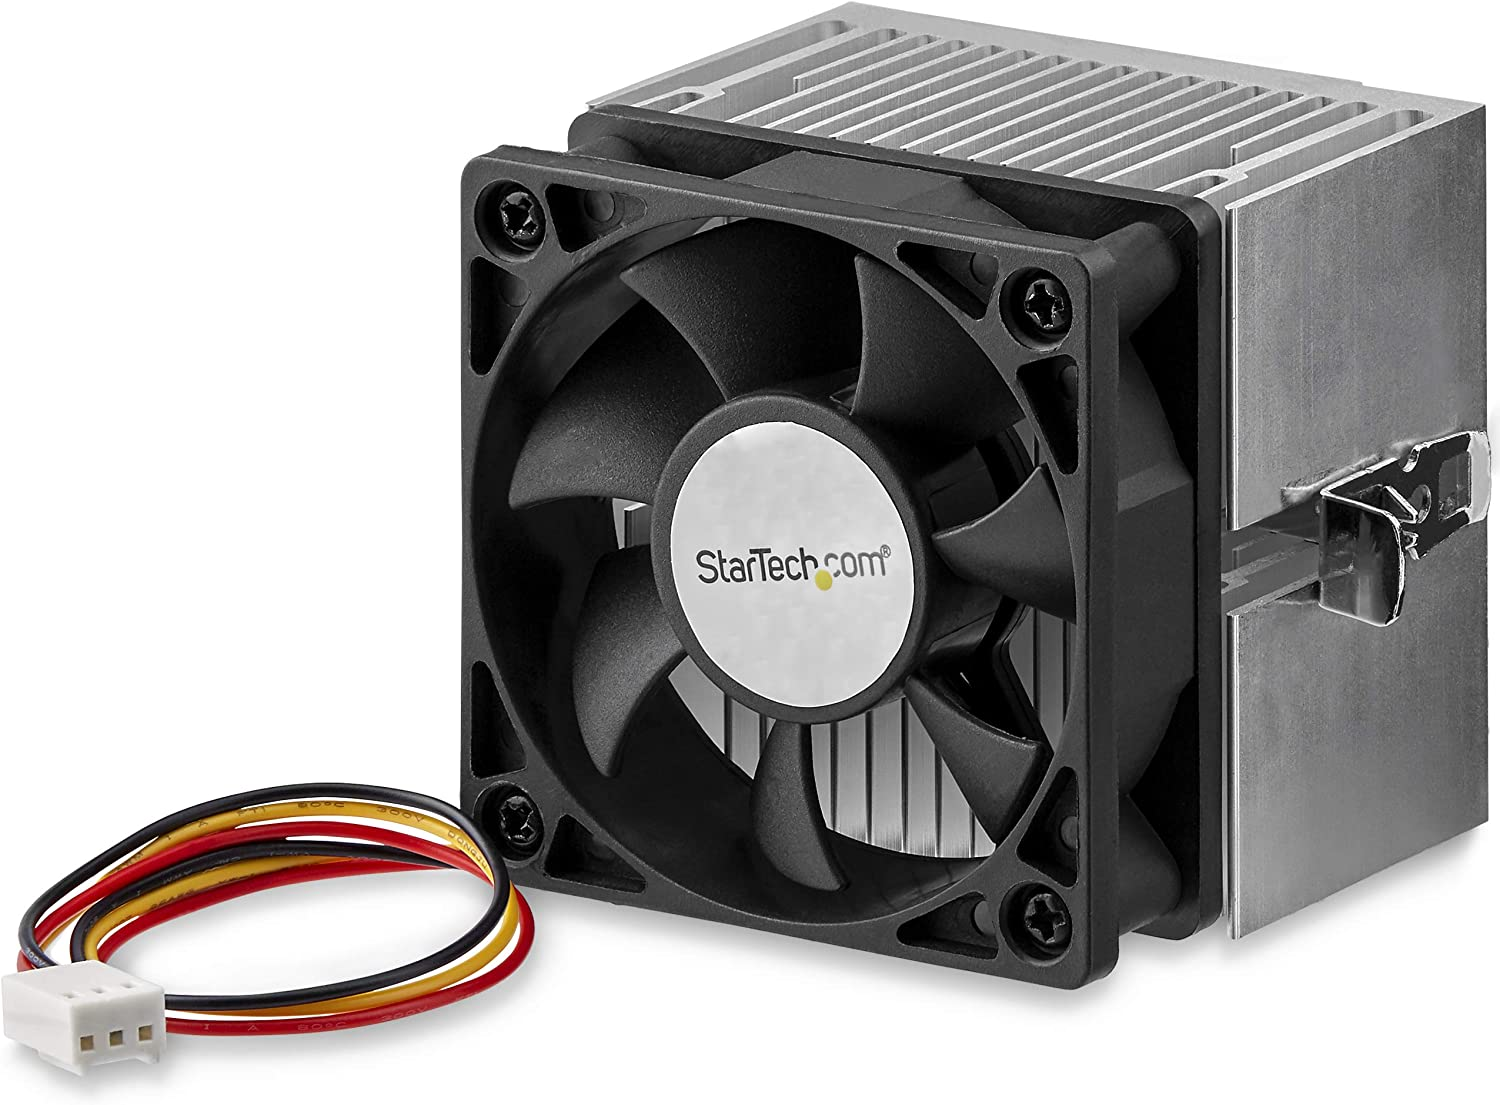 Amazon Com Startech Com 60x65mm Socket A Cpu Cooler Fan With Heatsink For Amd Duron Or Athlon Fandurontb Black Electronics